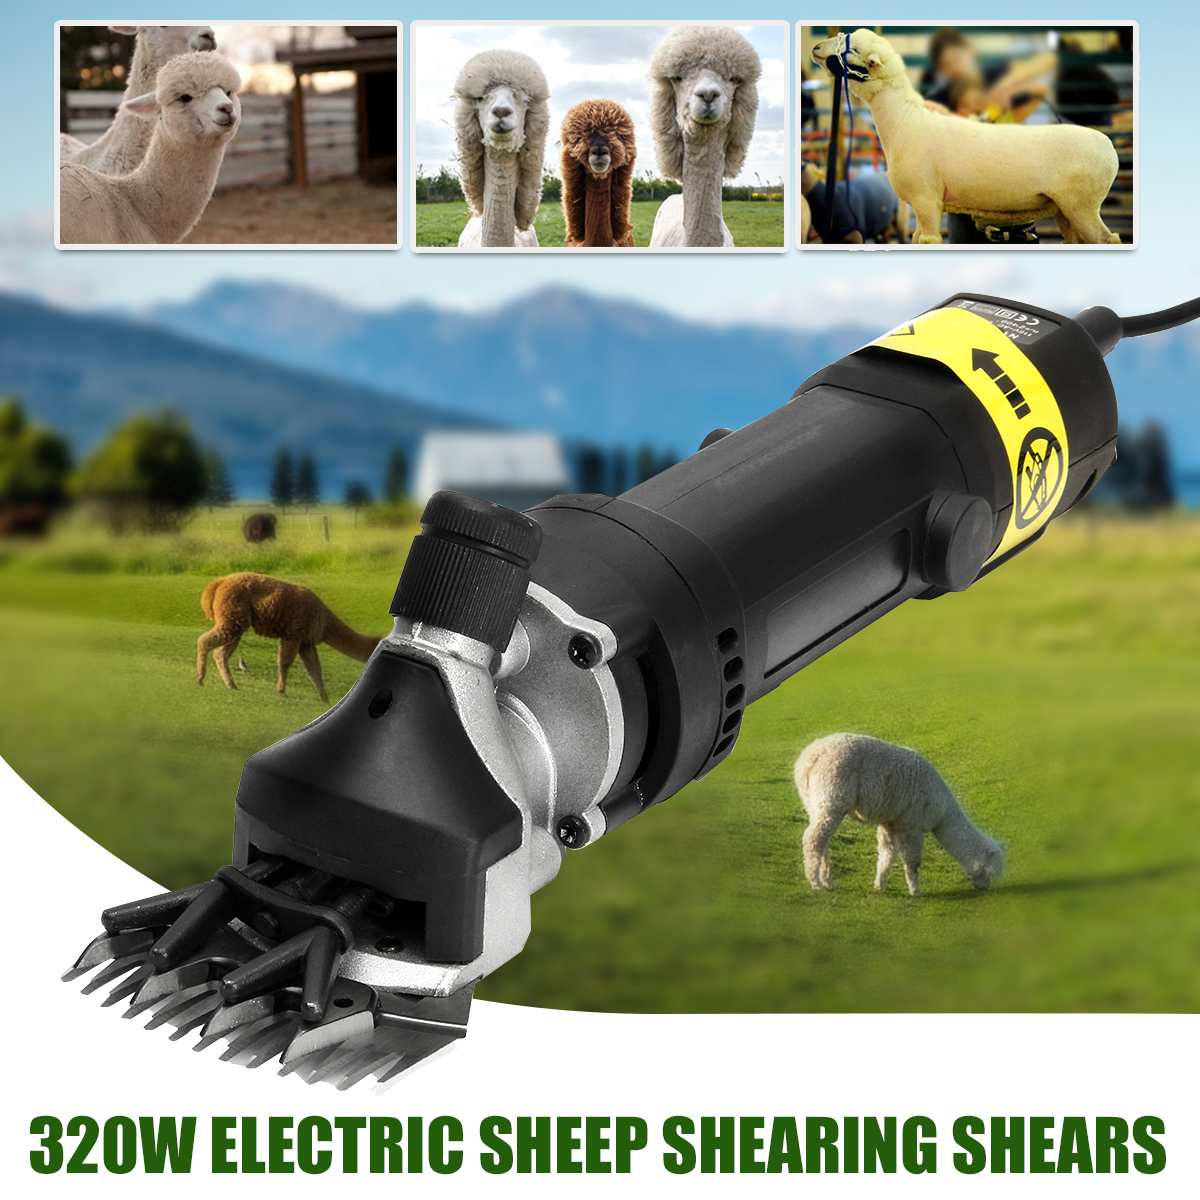 320W Electric Wool Shearing Scissors UK 220V US 110V Electric Sheep Goat Alpaca Pro Animal Groomer Clippers Wool Shearing Shears320W Electric Wool Shearing Scissors UK 220V US 110V Electric Sheep Goat Alpaca Pro Animal Groomer Clippers Wool Shearing Shears